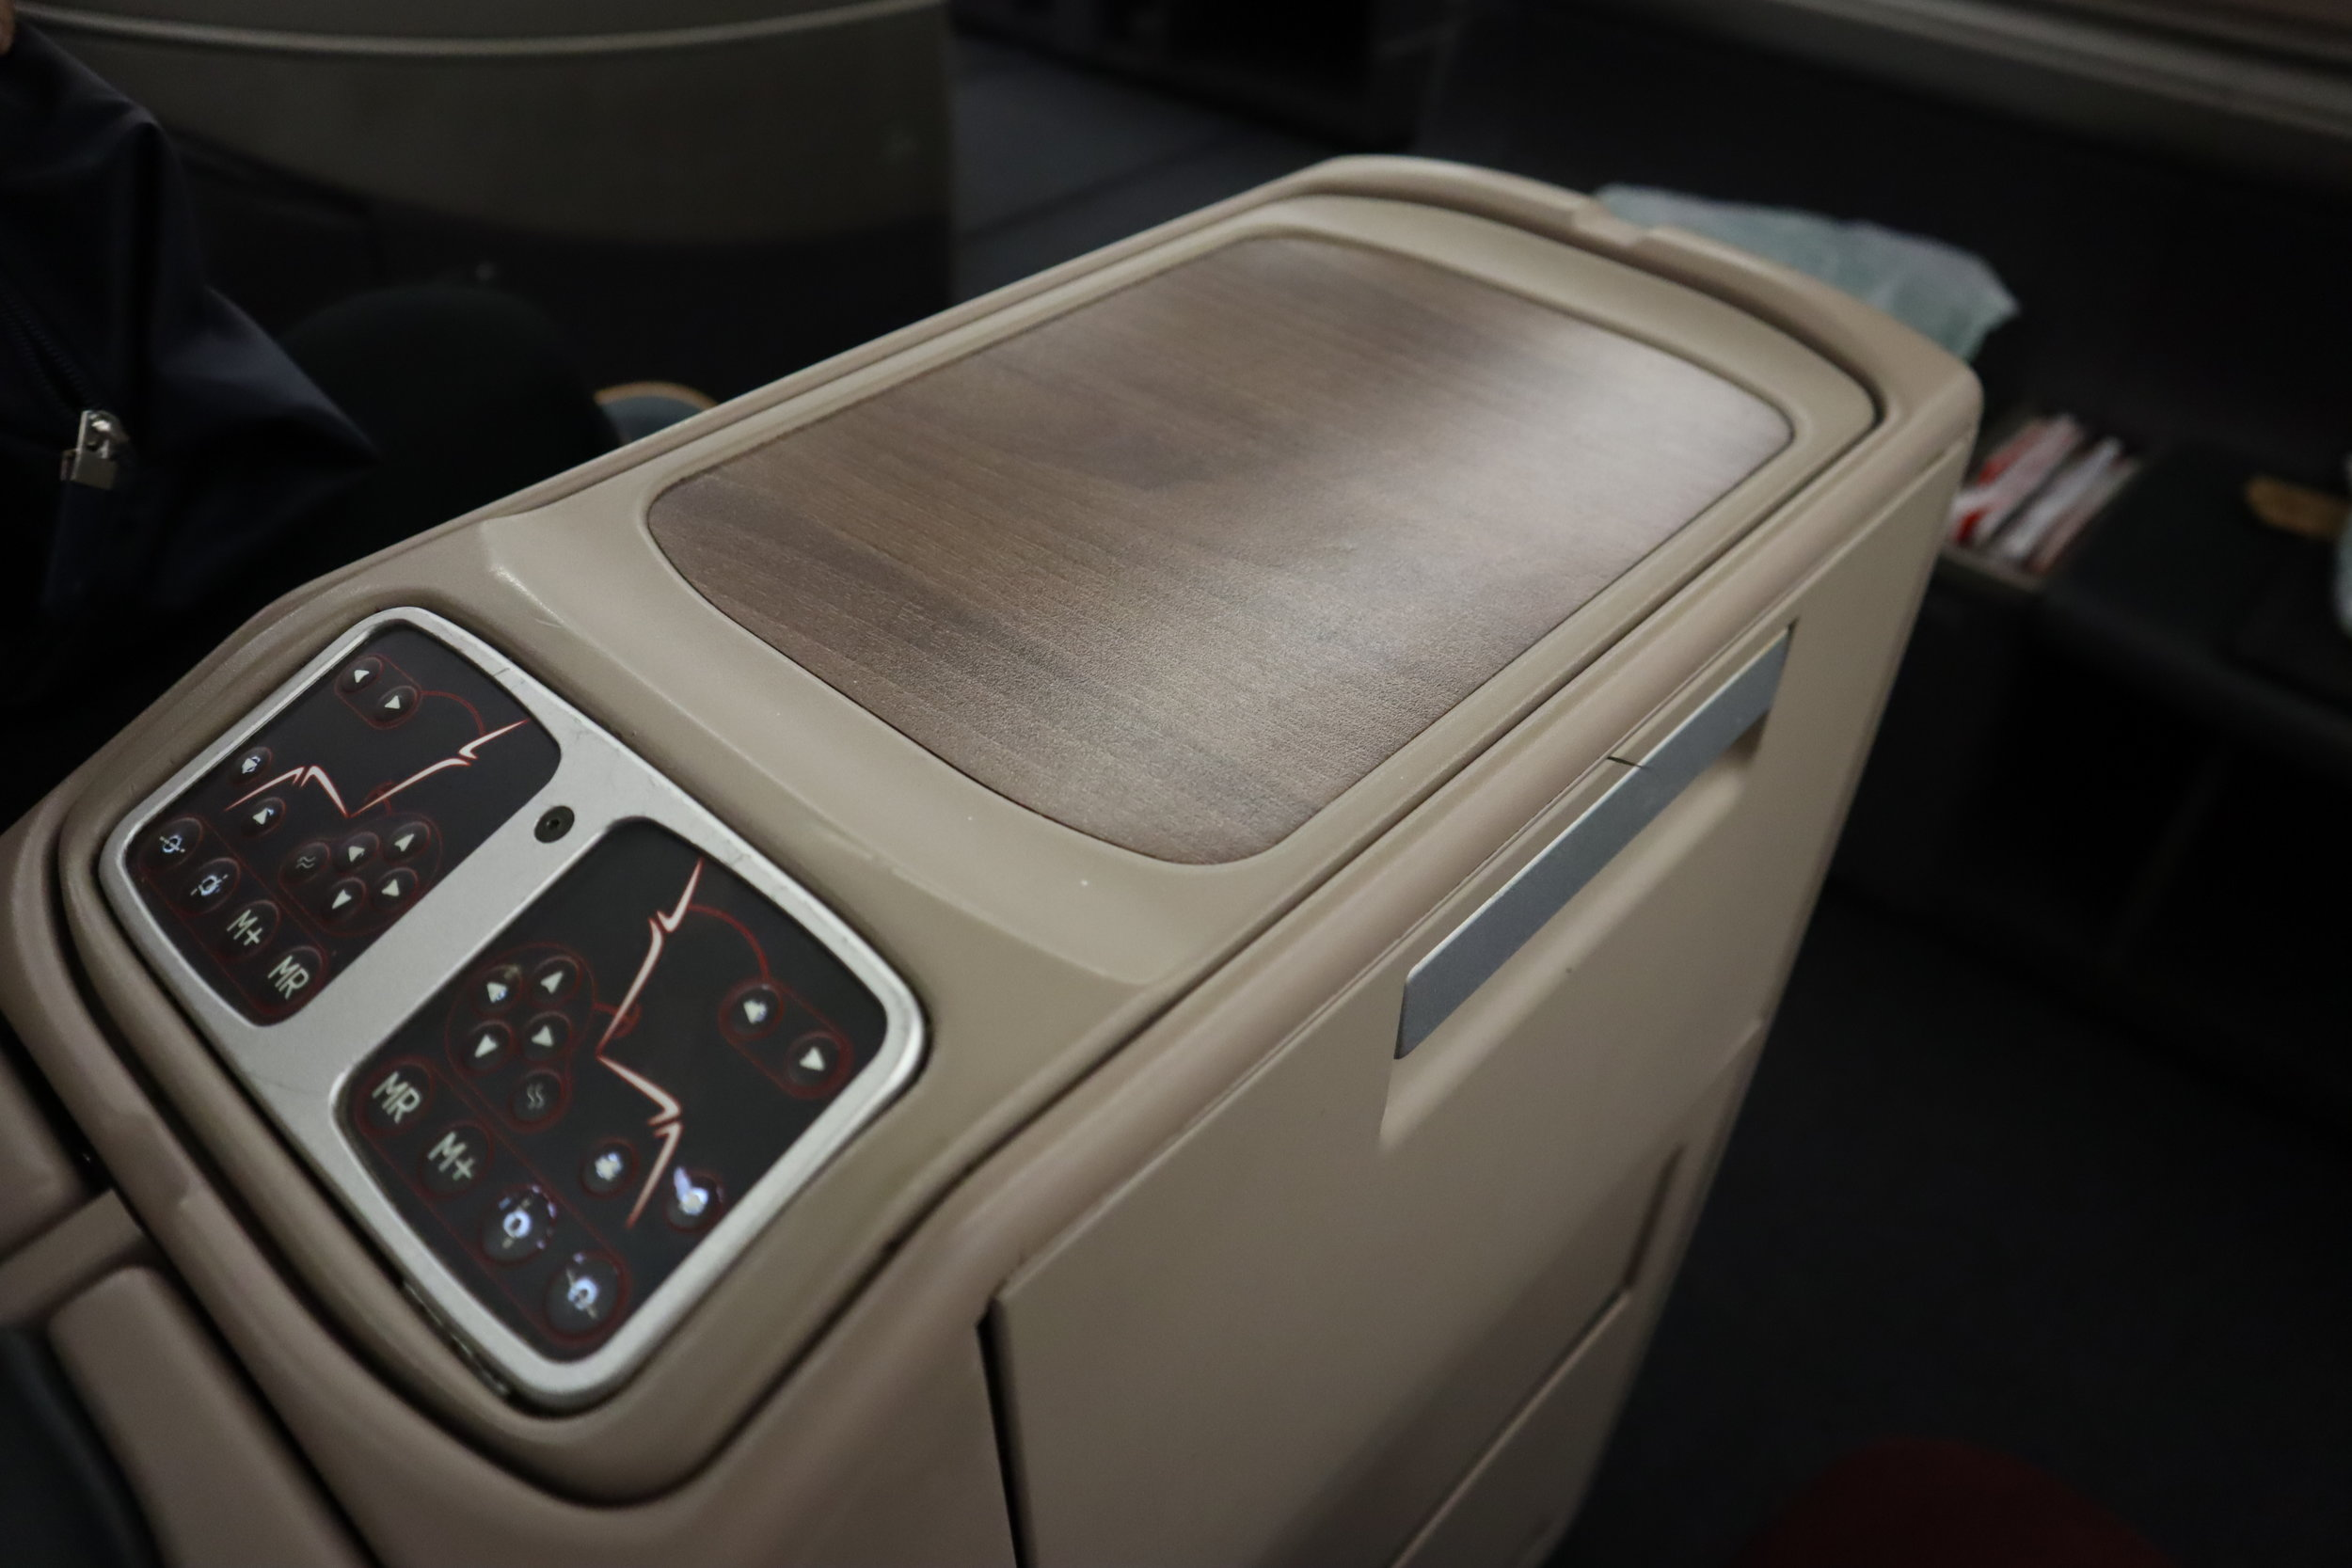 Turkish Airlines A330 business class – Seat controls and countertop